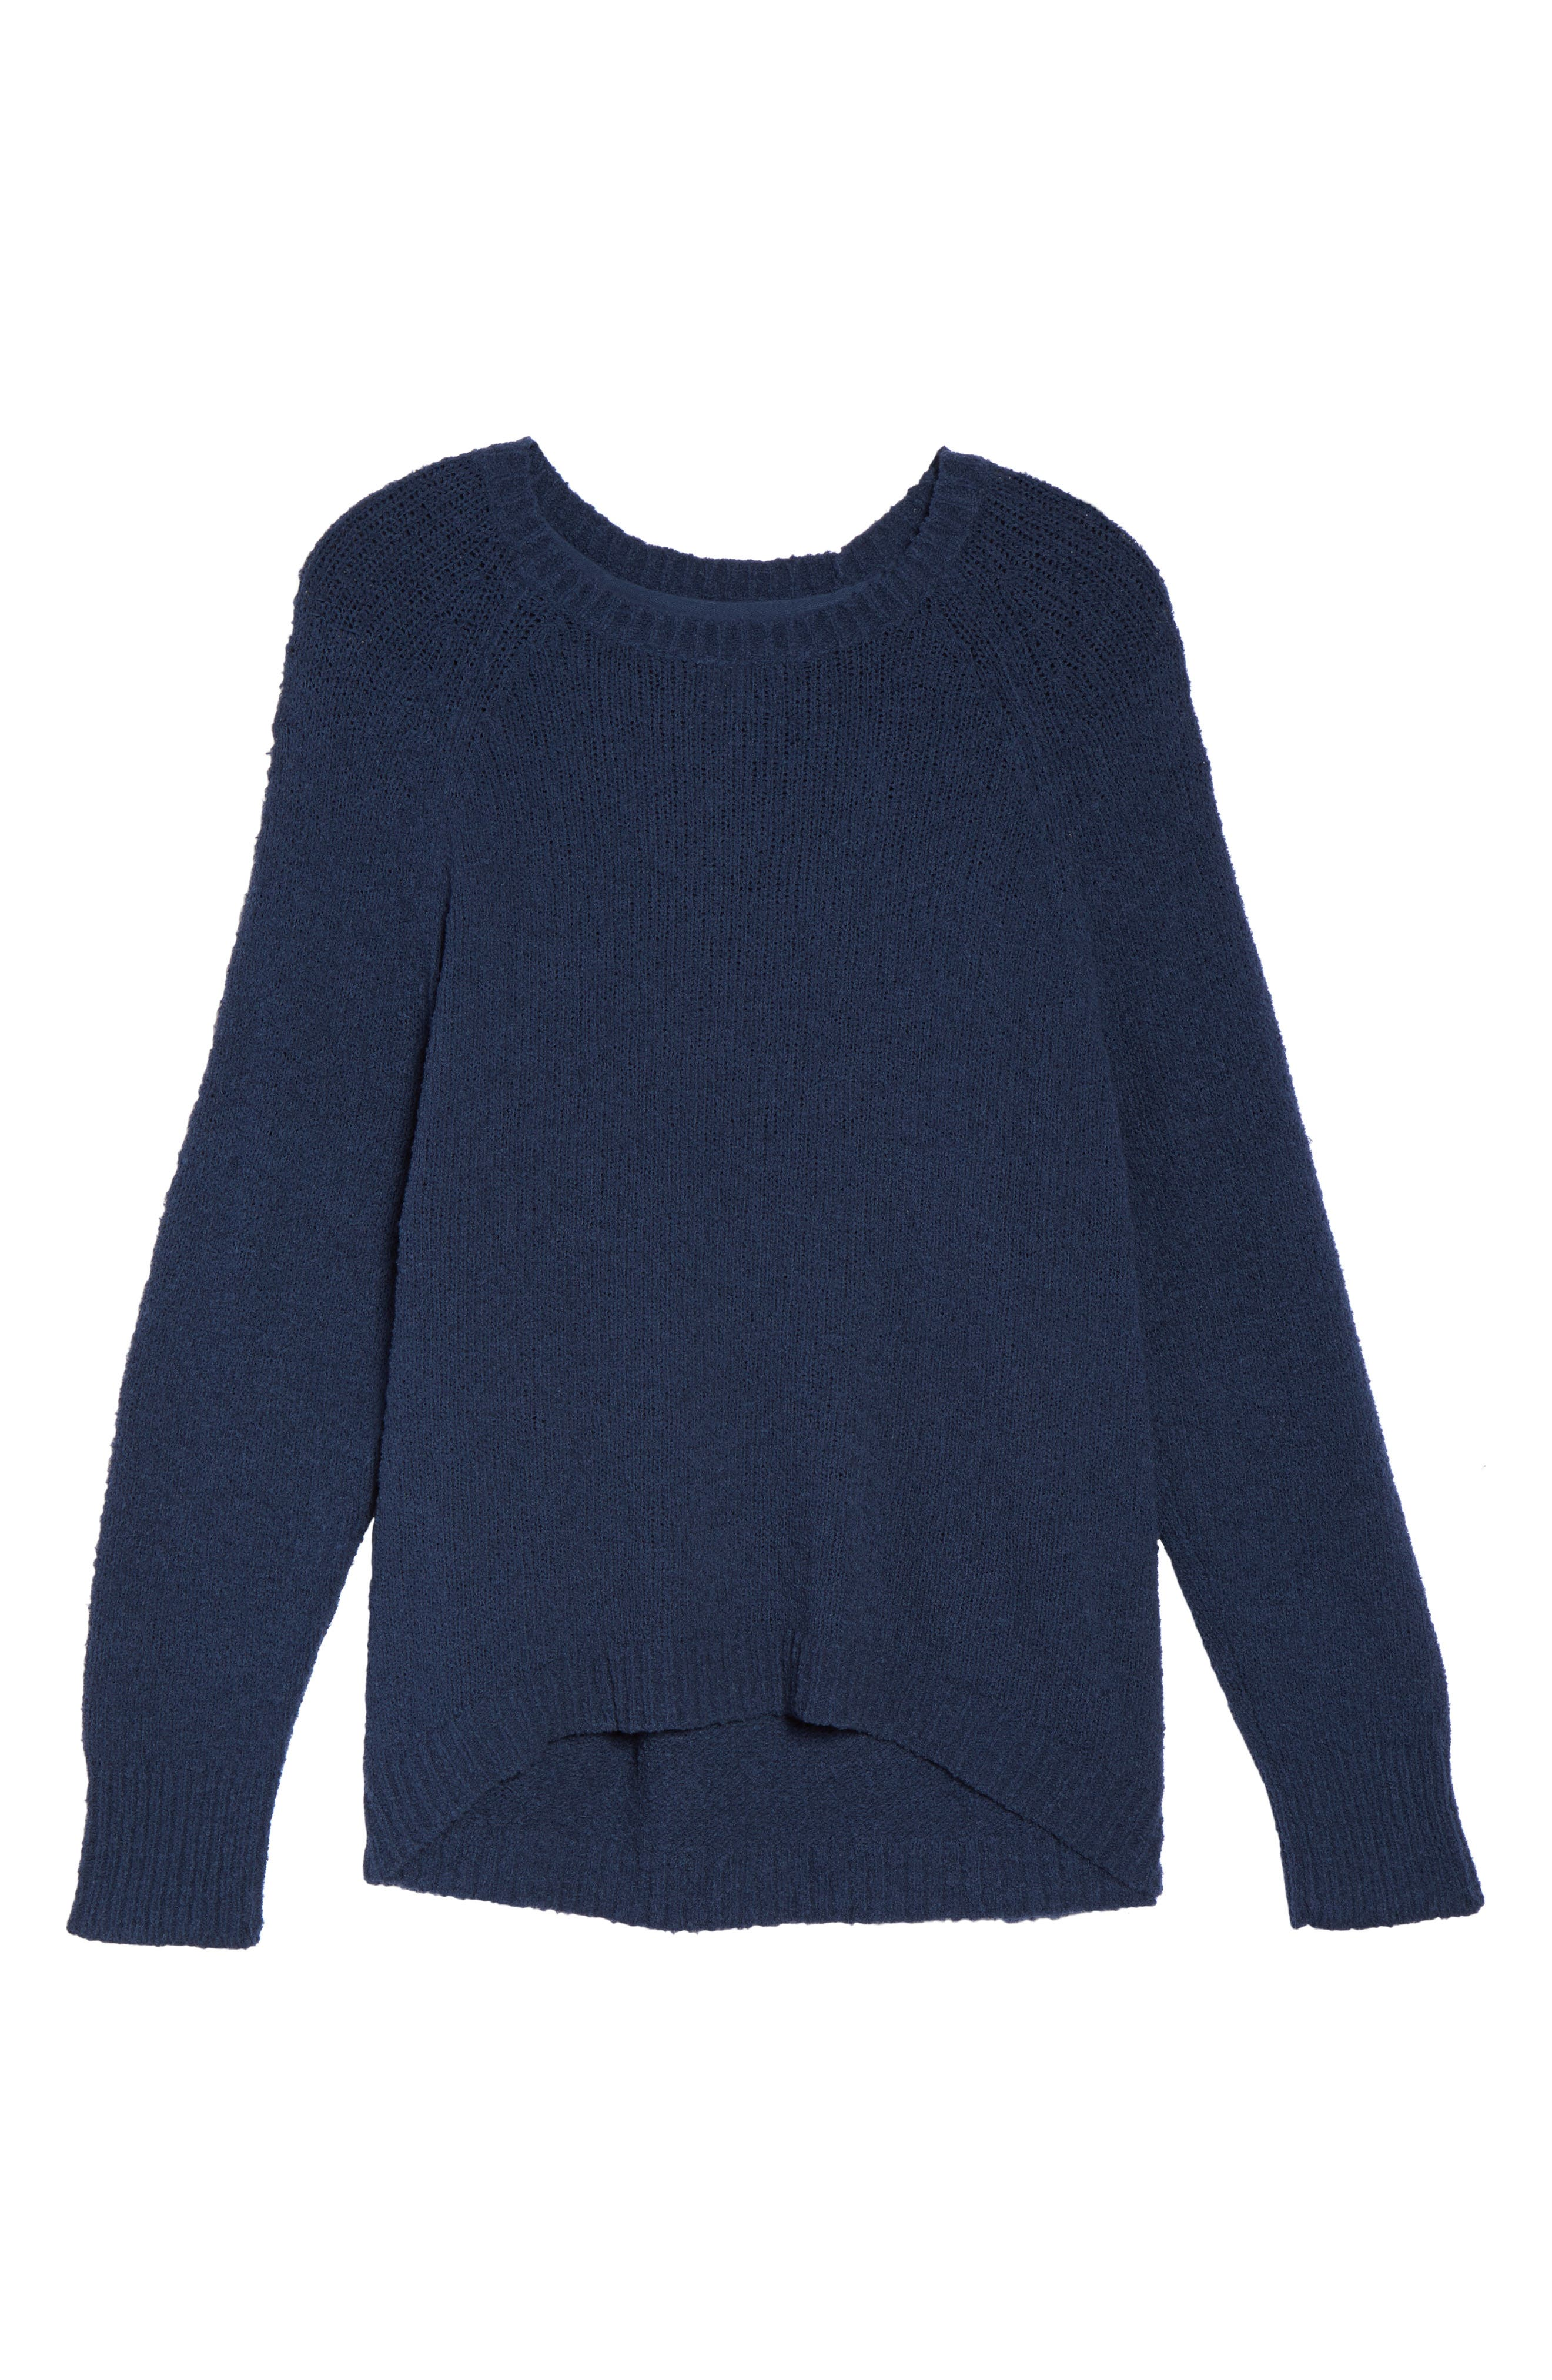 Relaxed Crewneck Sweater,                             Alternate thumbnail 22, color,